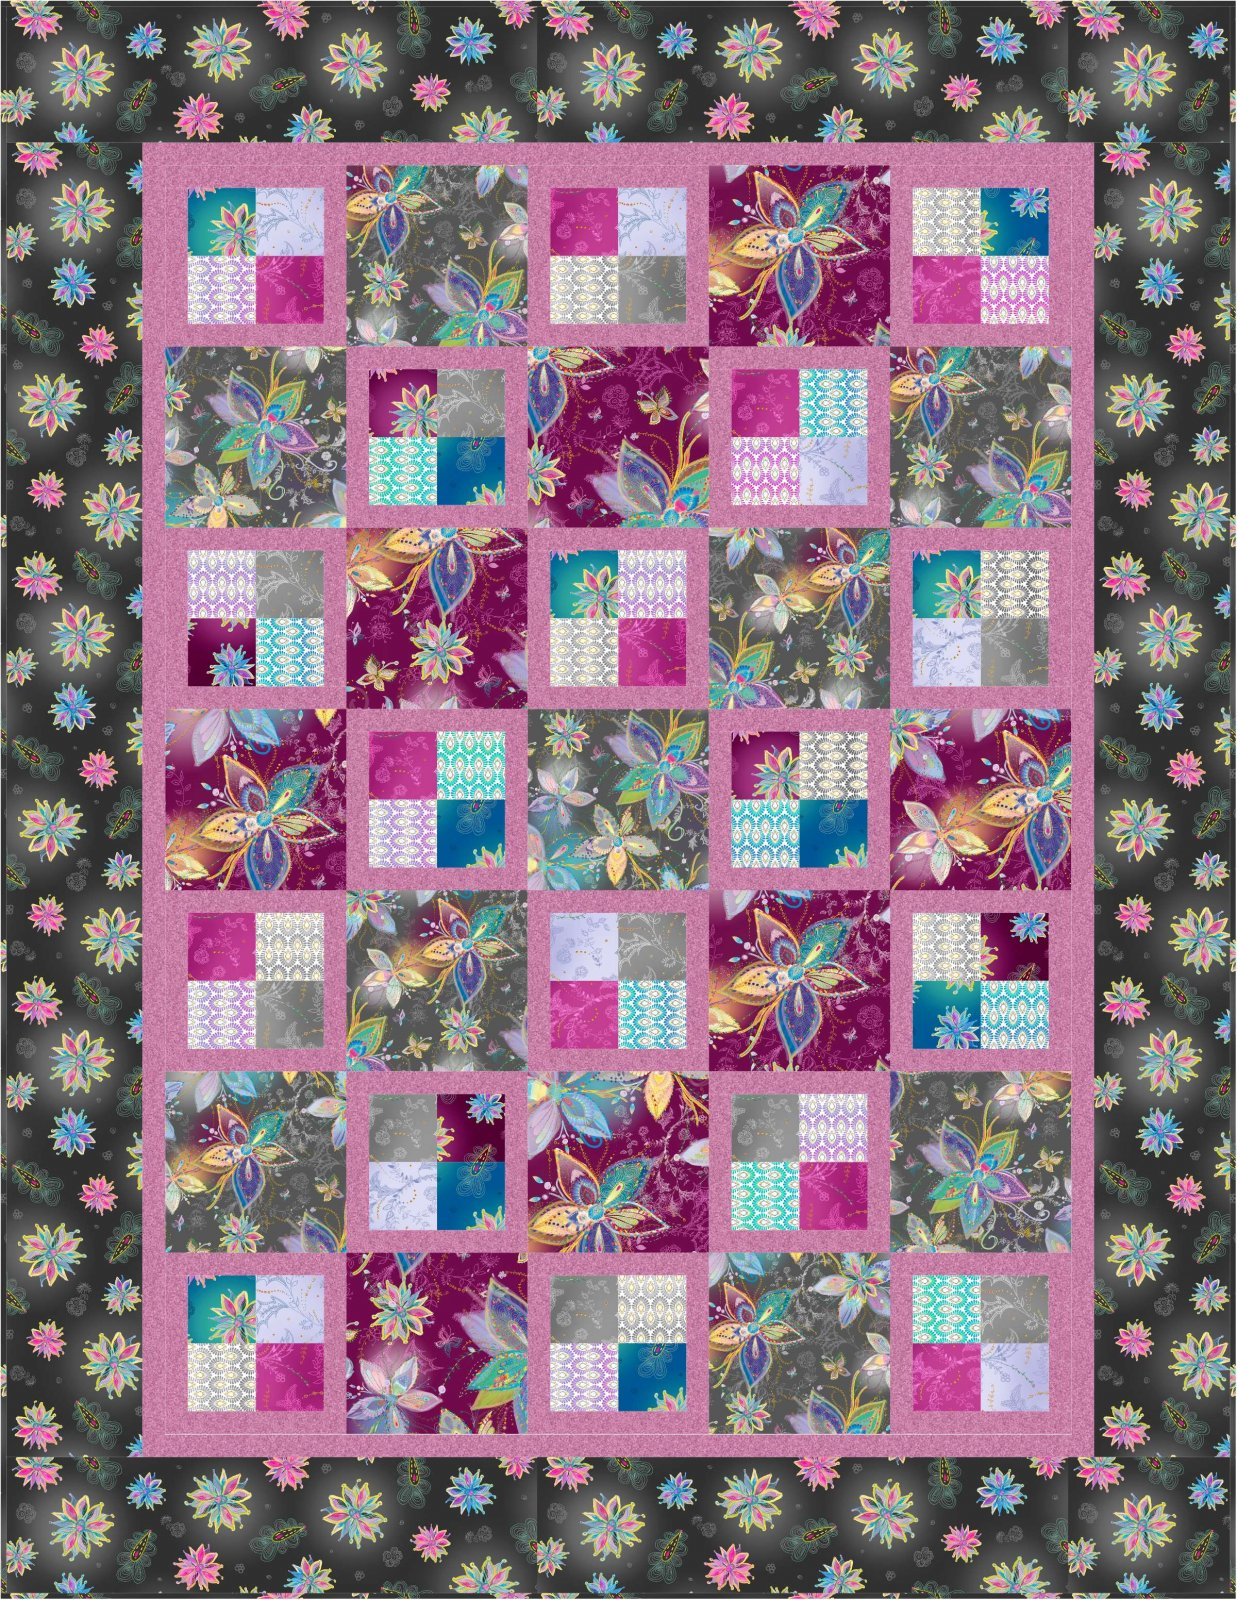 Enchanted Floral Kit - PRE-ORDER by July 22 for 20% Off!